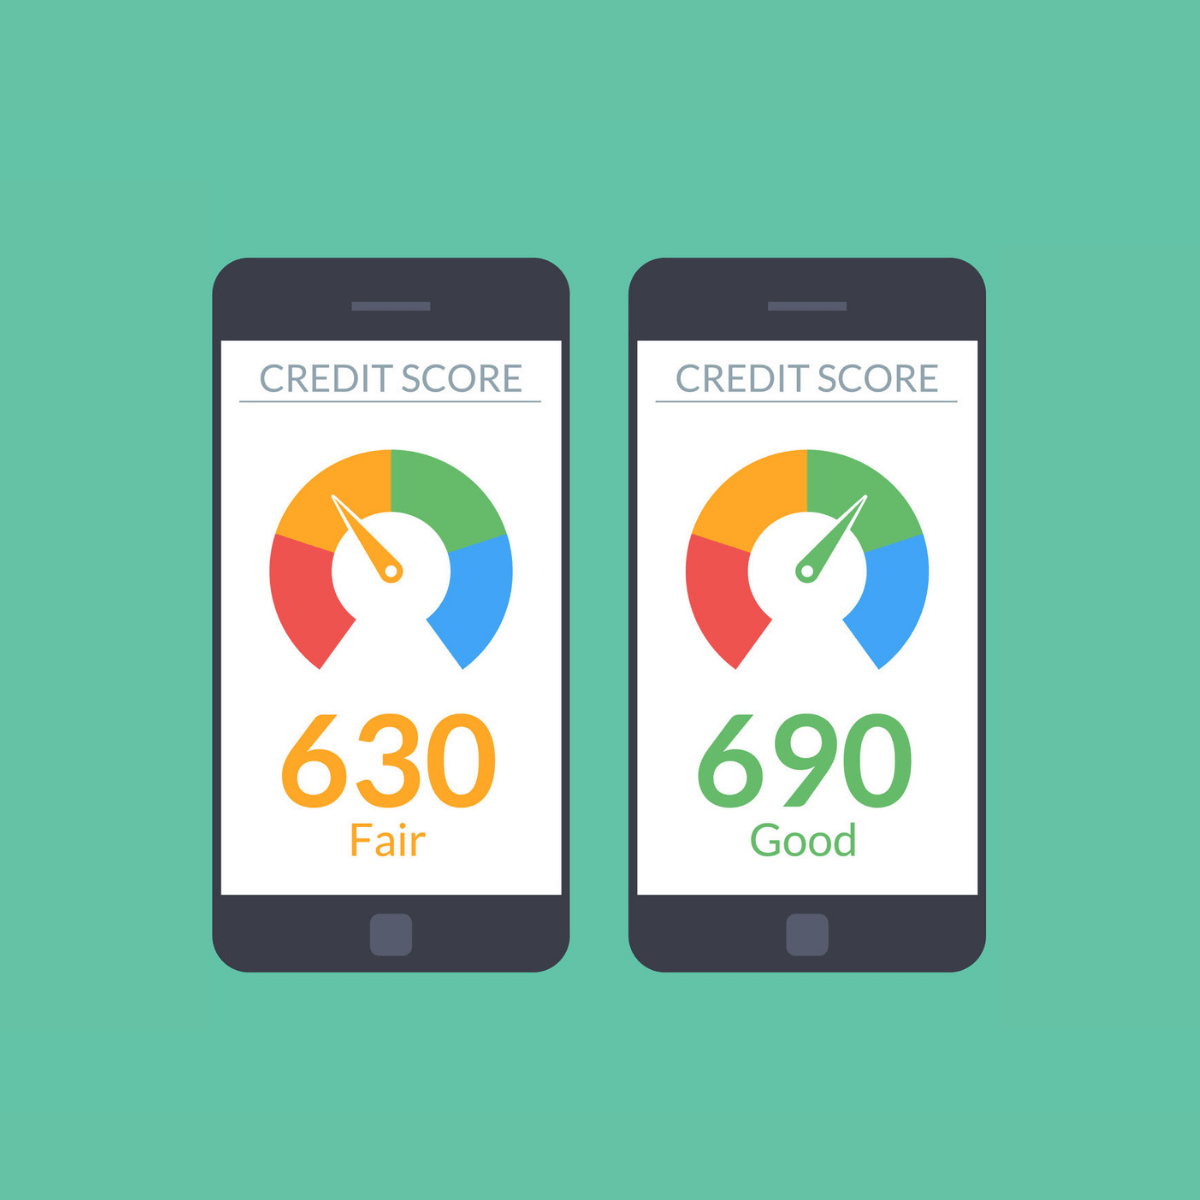 What Credit Score Do You Need For A Car Loan